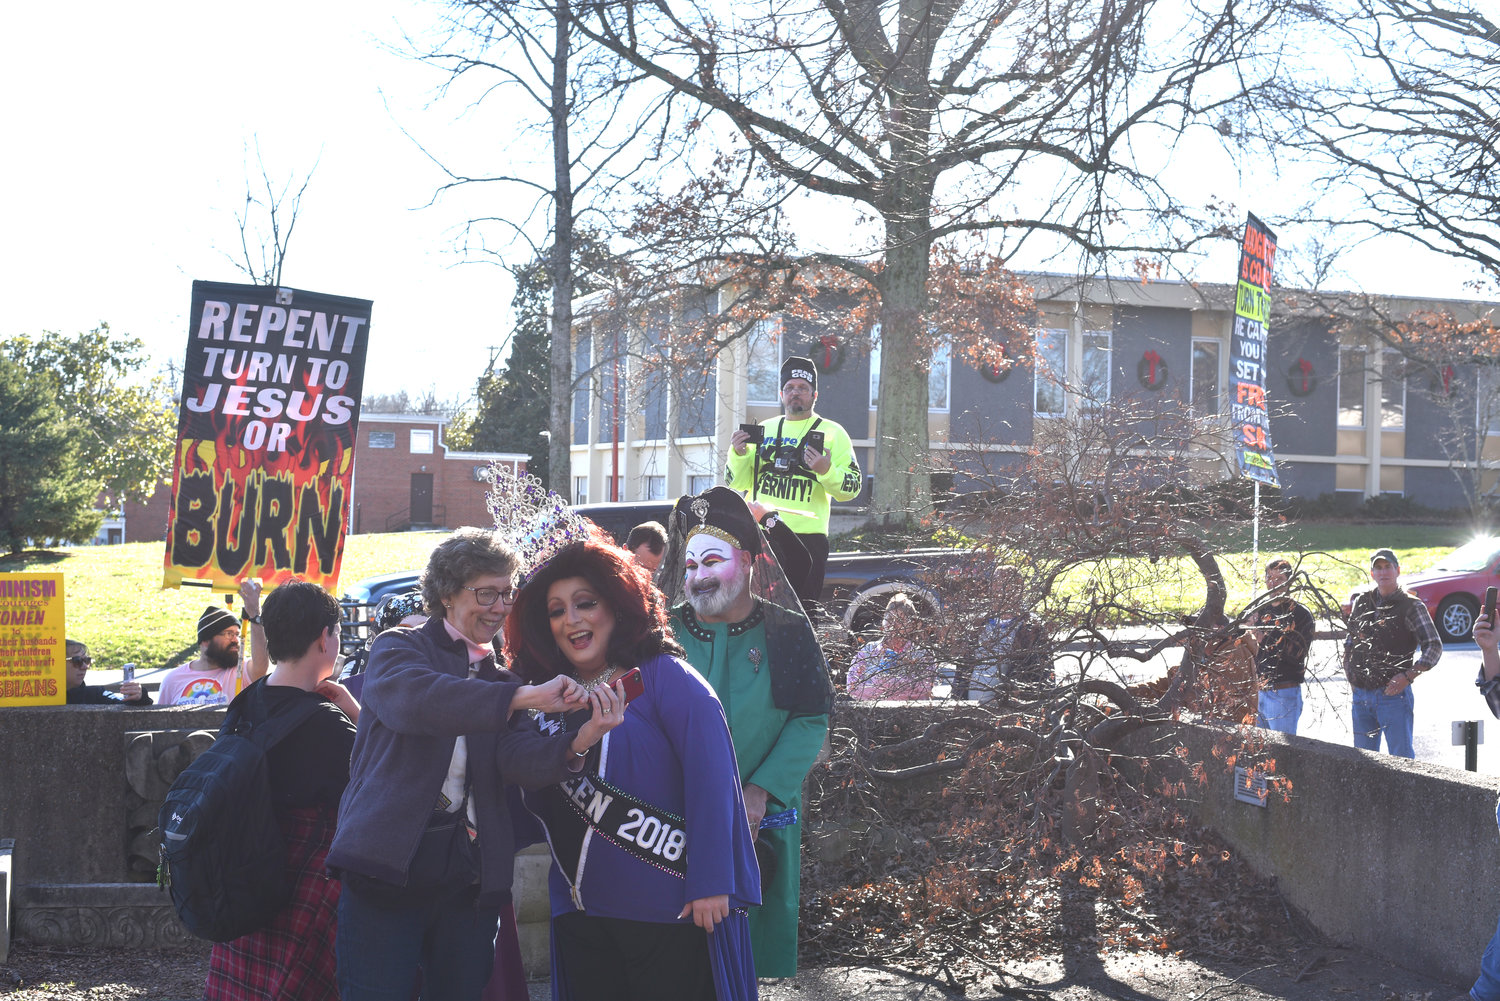 Drag queen storytime draws protests | Herald Citizen